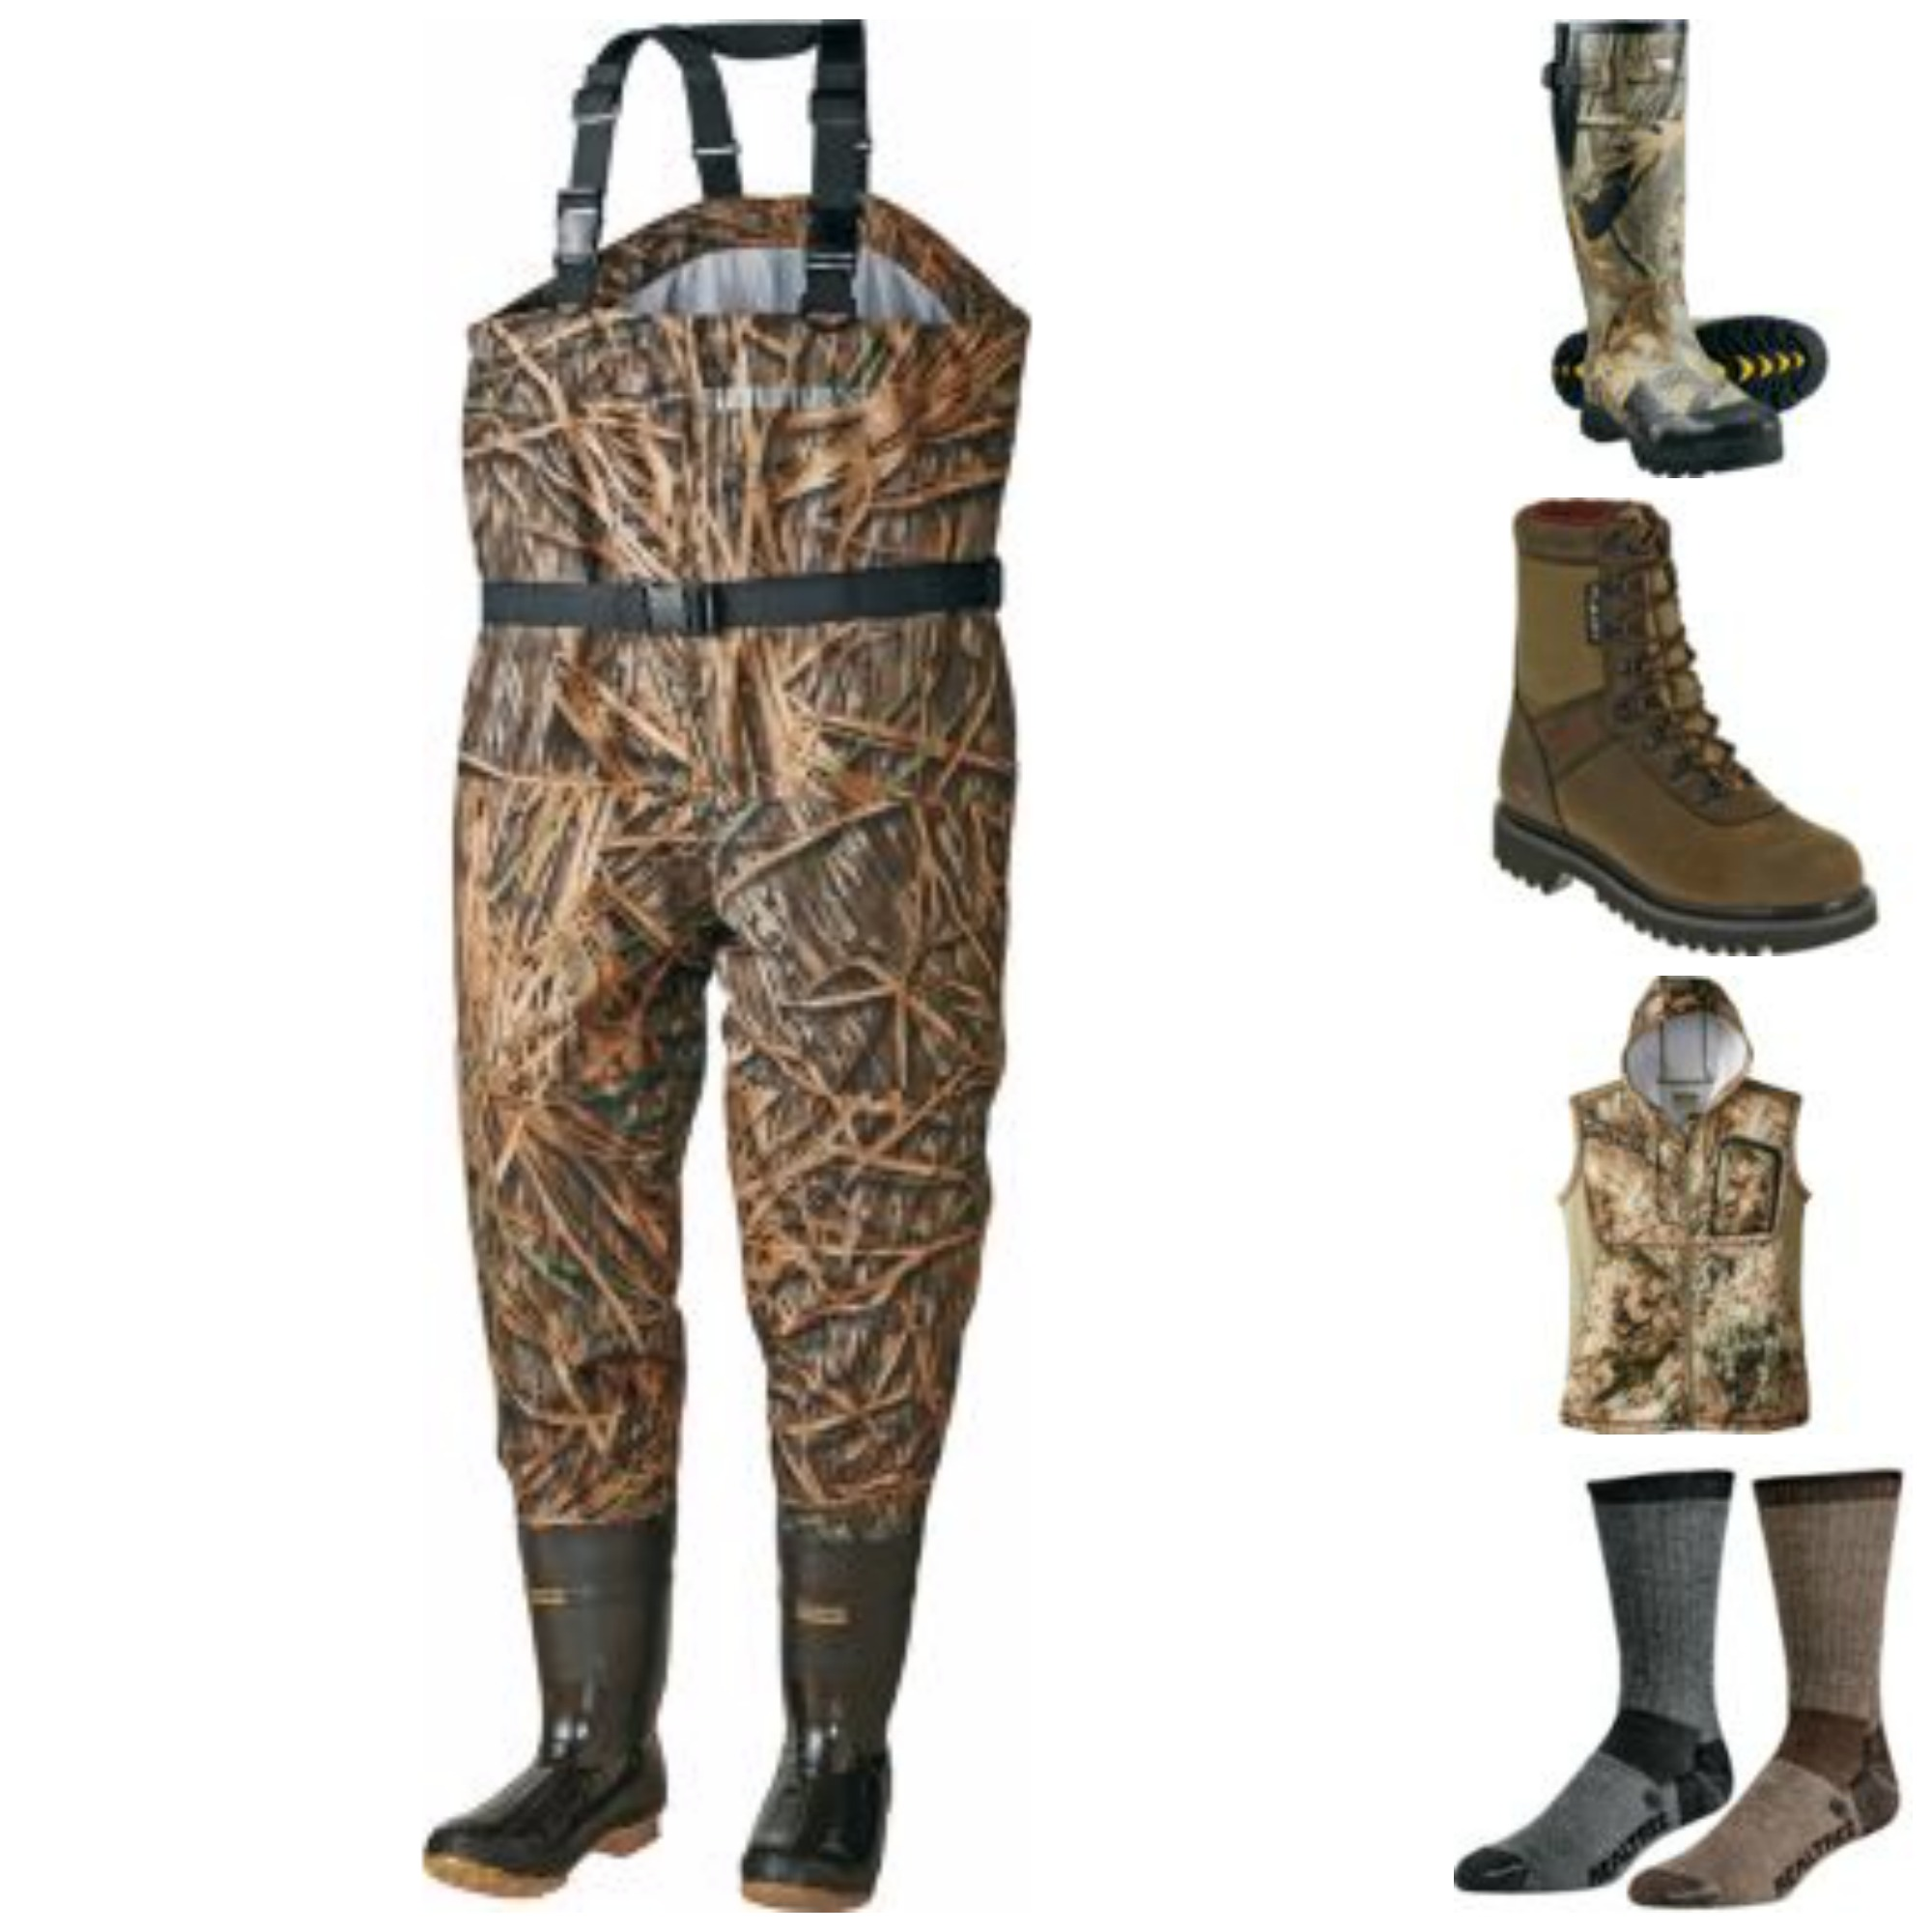 Cabela 39 s giant huntingwear sale up to 60 off mylitter for Cabela s fishing sale